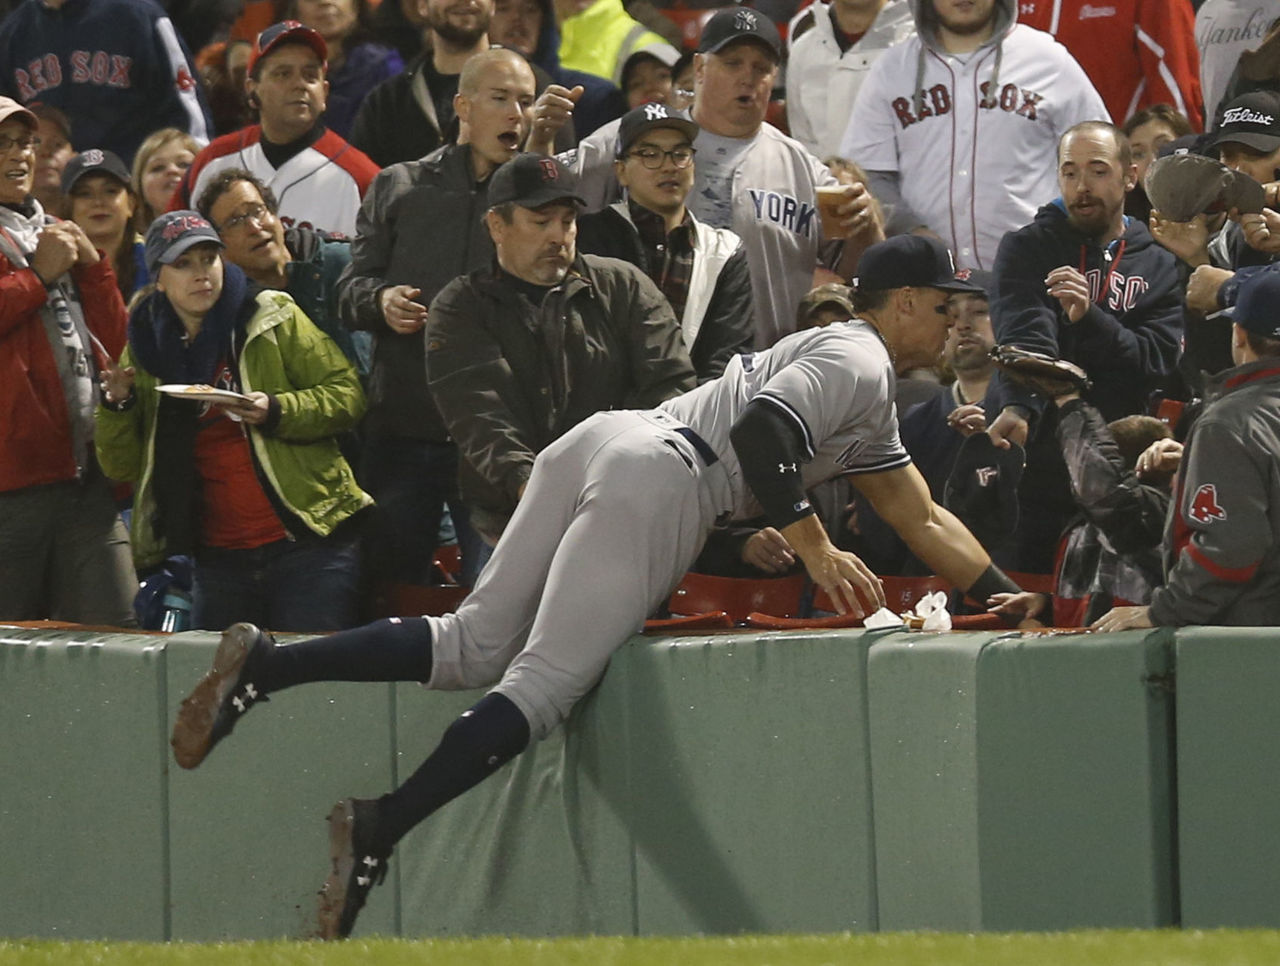 Cropped 2017 04 27t001222z 234307659 nocid rtrmadp 3 mlb new york yankees at boston red sox